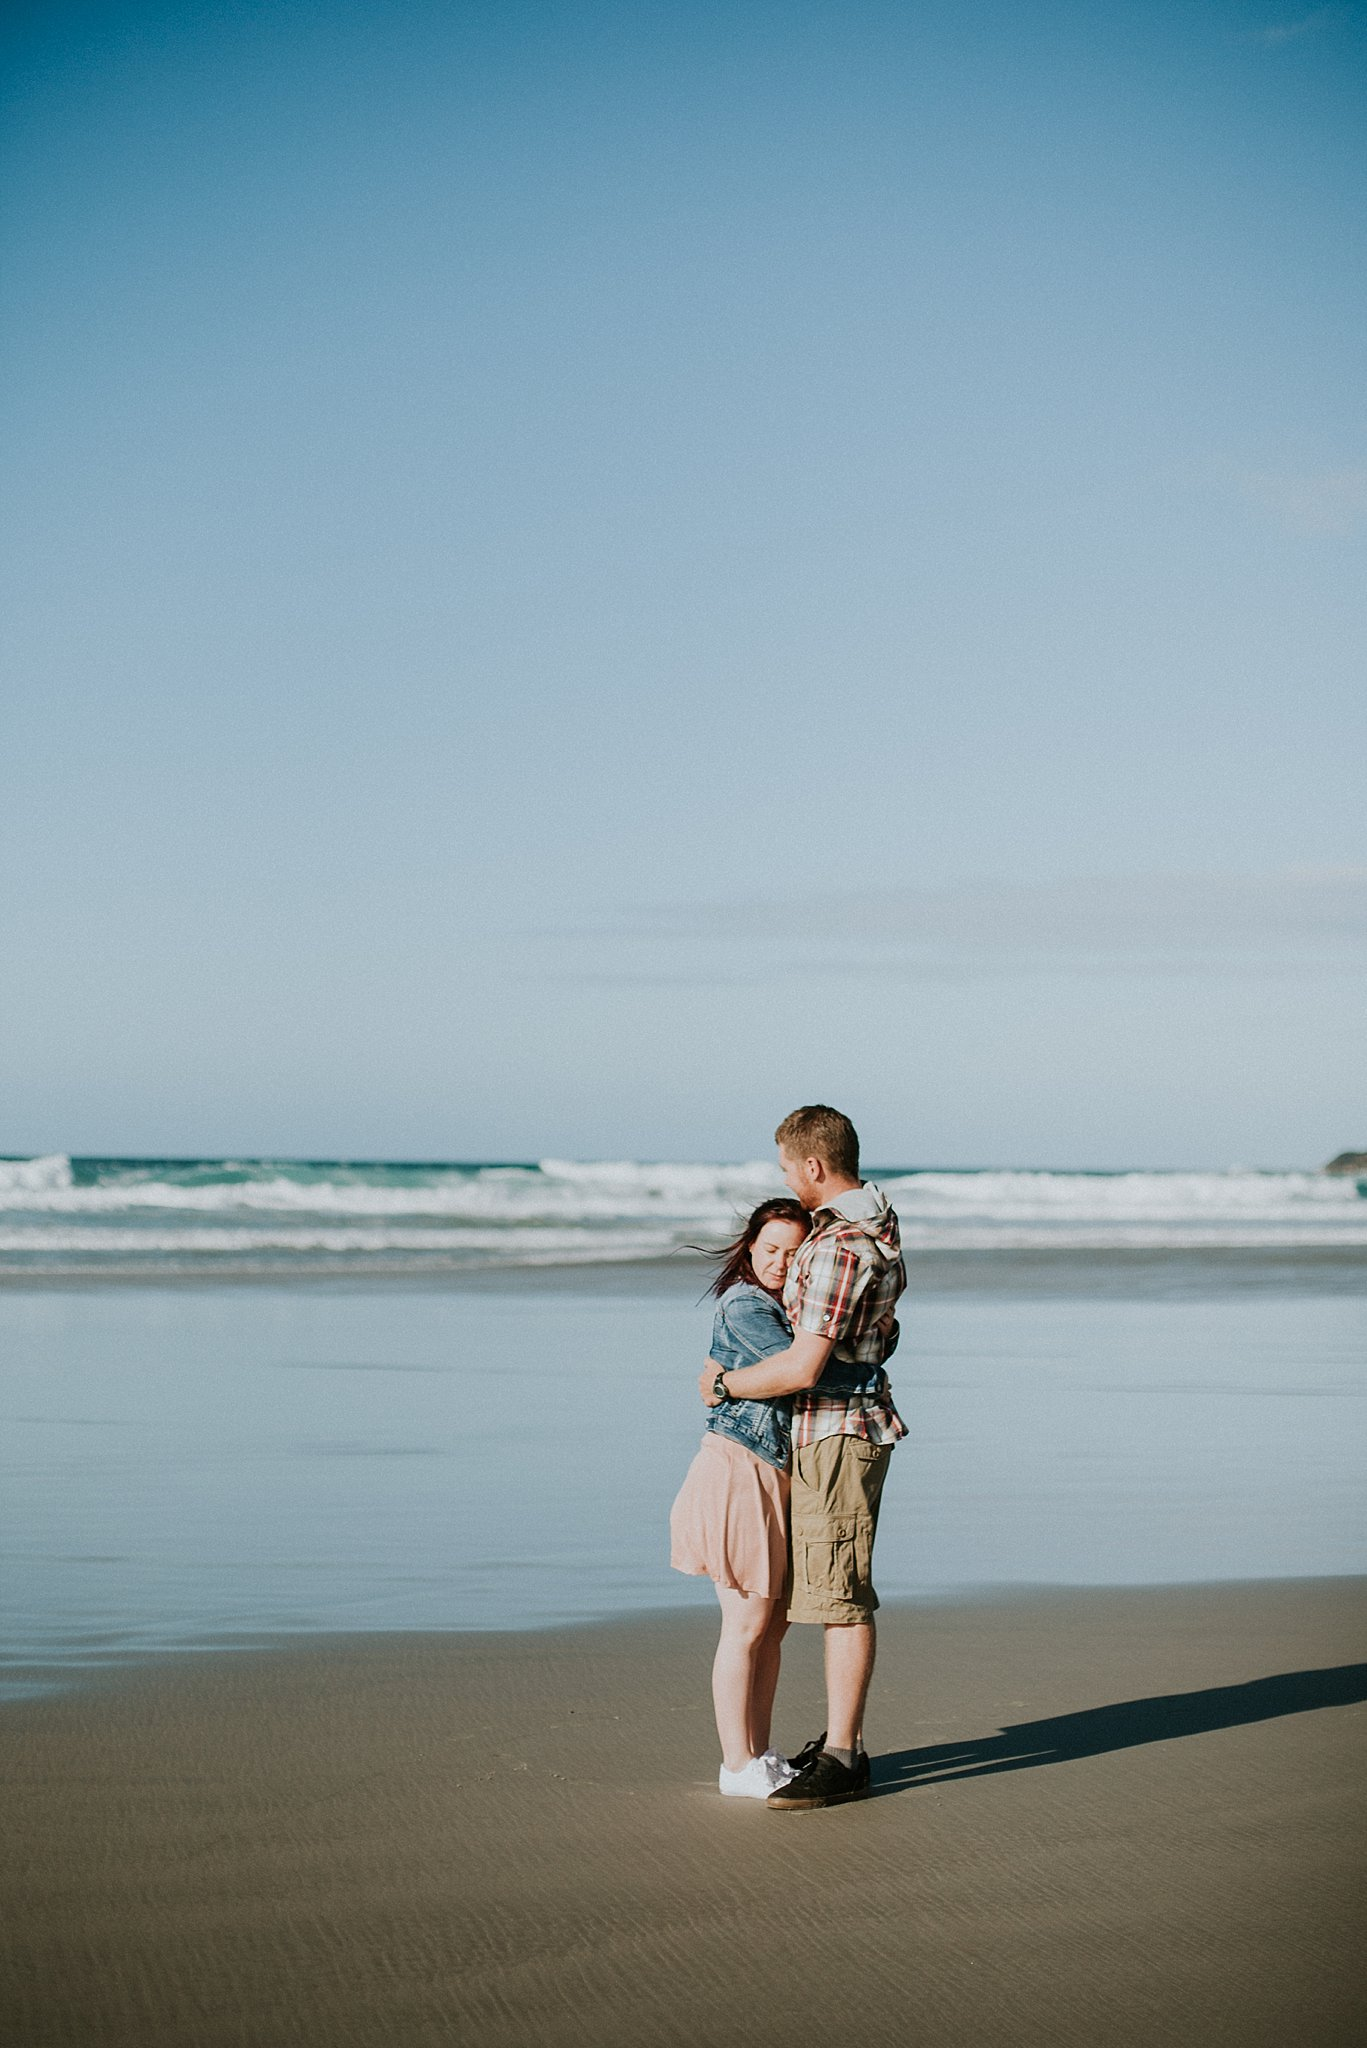 Kate Roberge Photography | Queenstown Wedding, Proposal, Elopement, Couple, Engagement Photographer